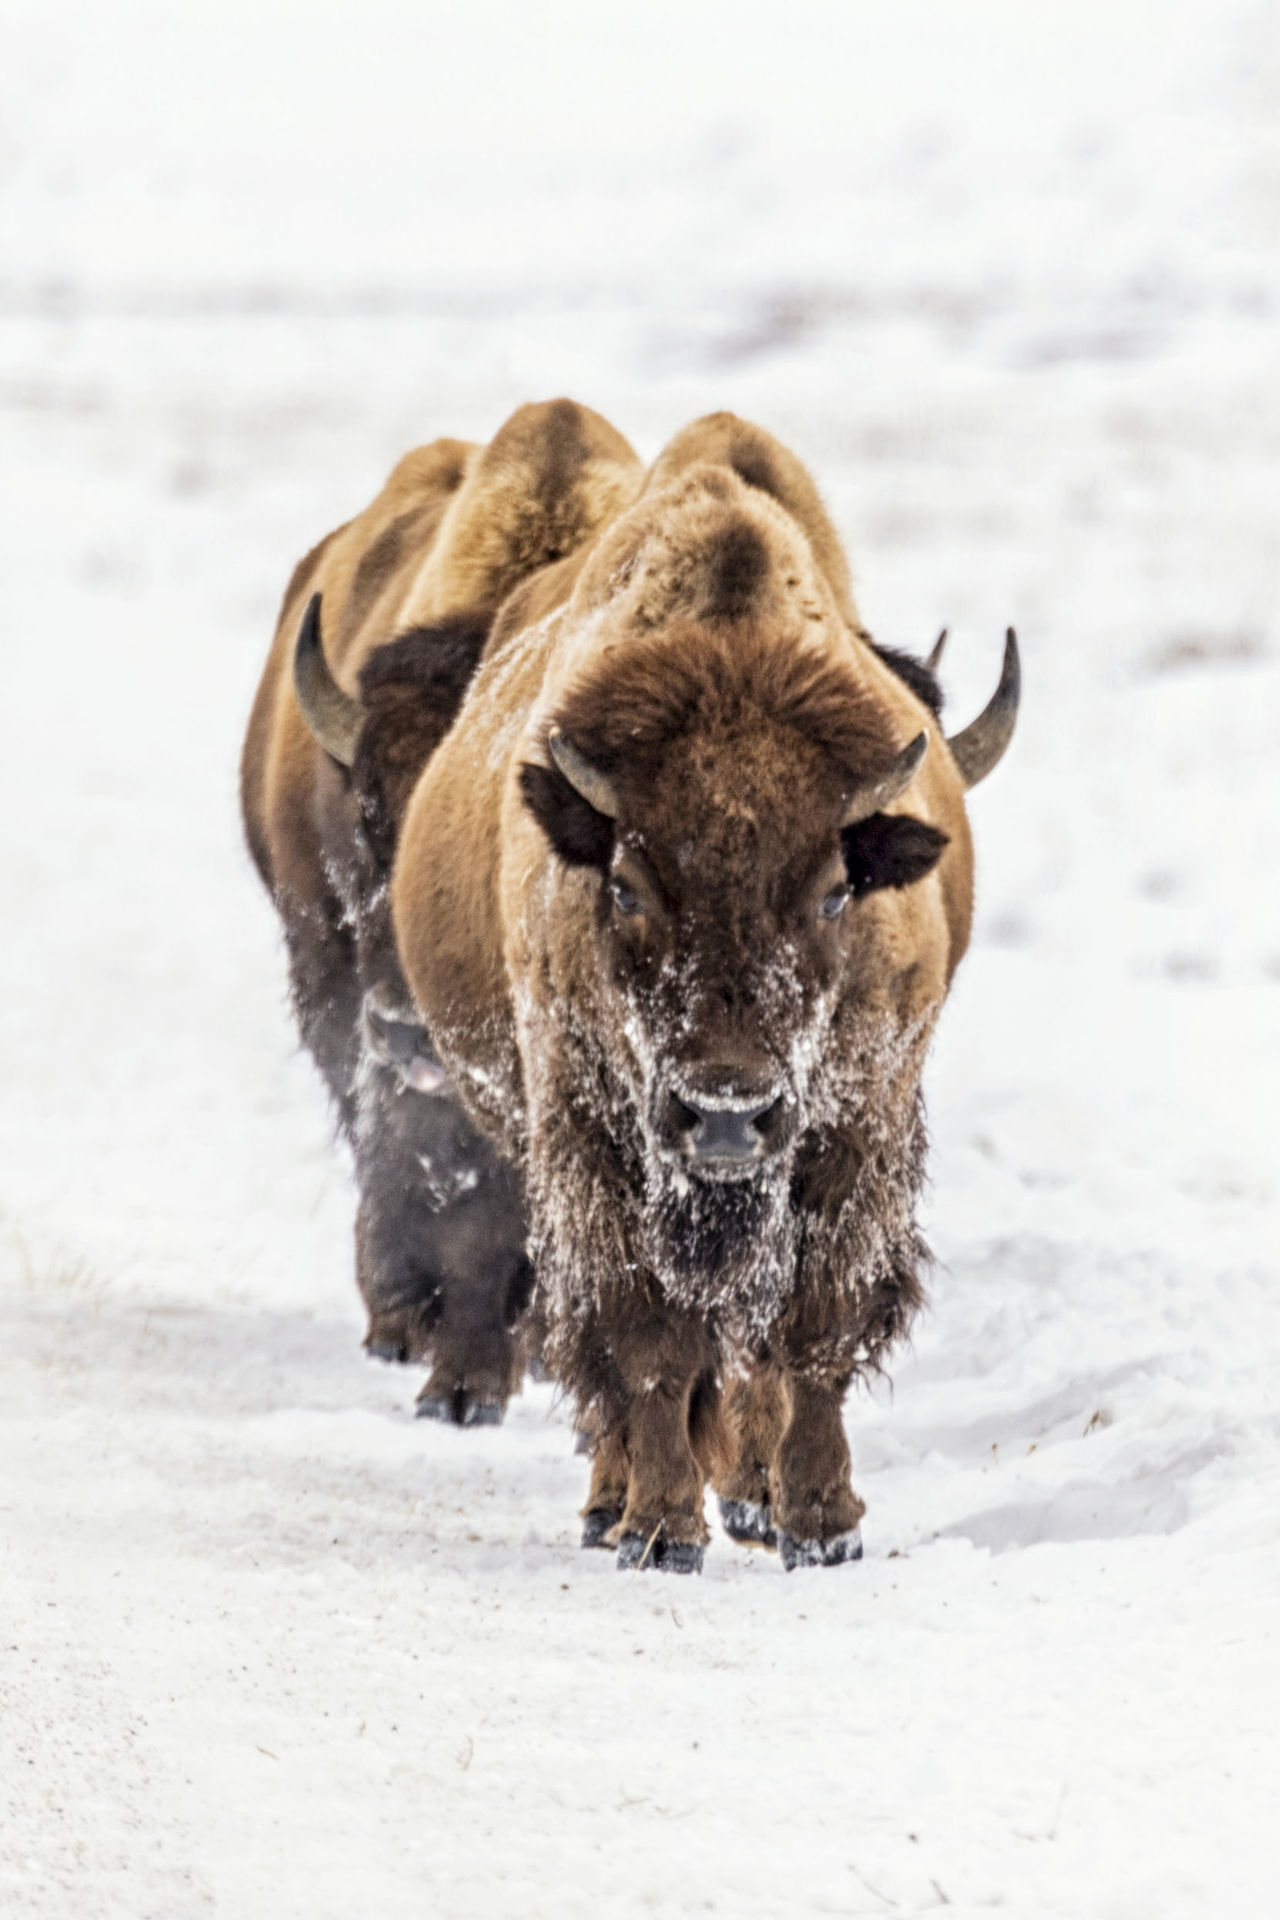 Animal Themes Bison Buffalo Mammal Nature No People Outdoors Road Snow Wildlife Winter